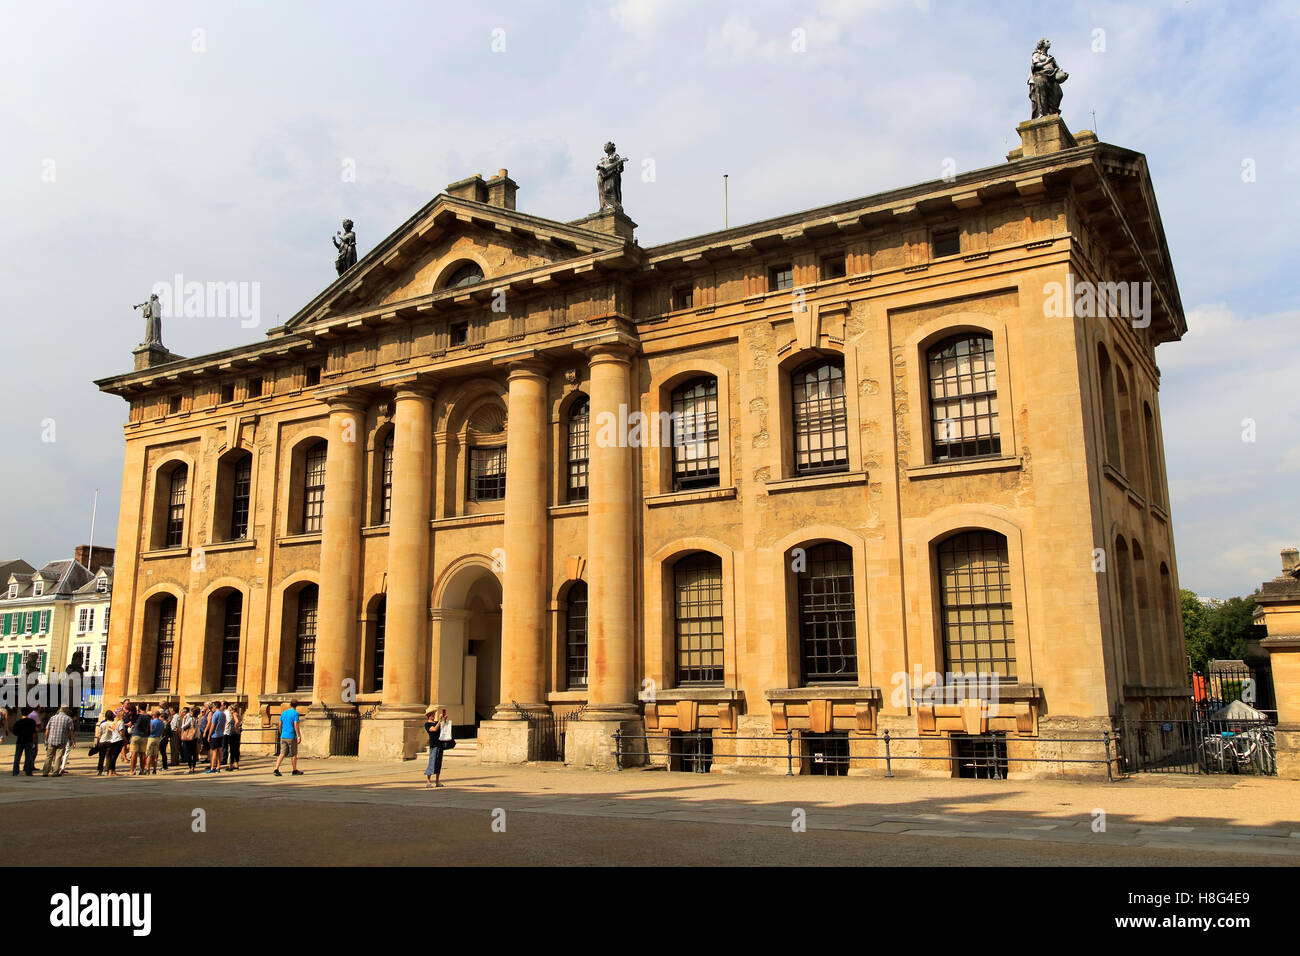 clarendon building early 18th century neoclassical architecture